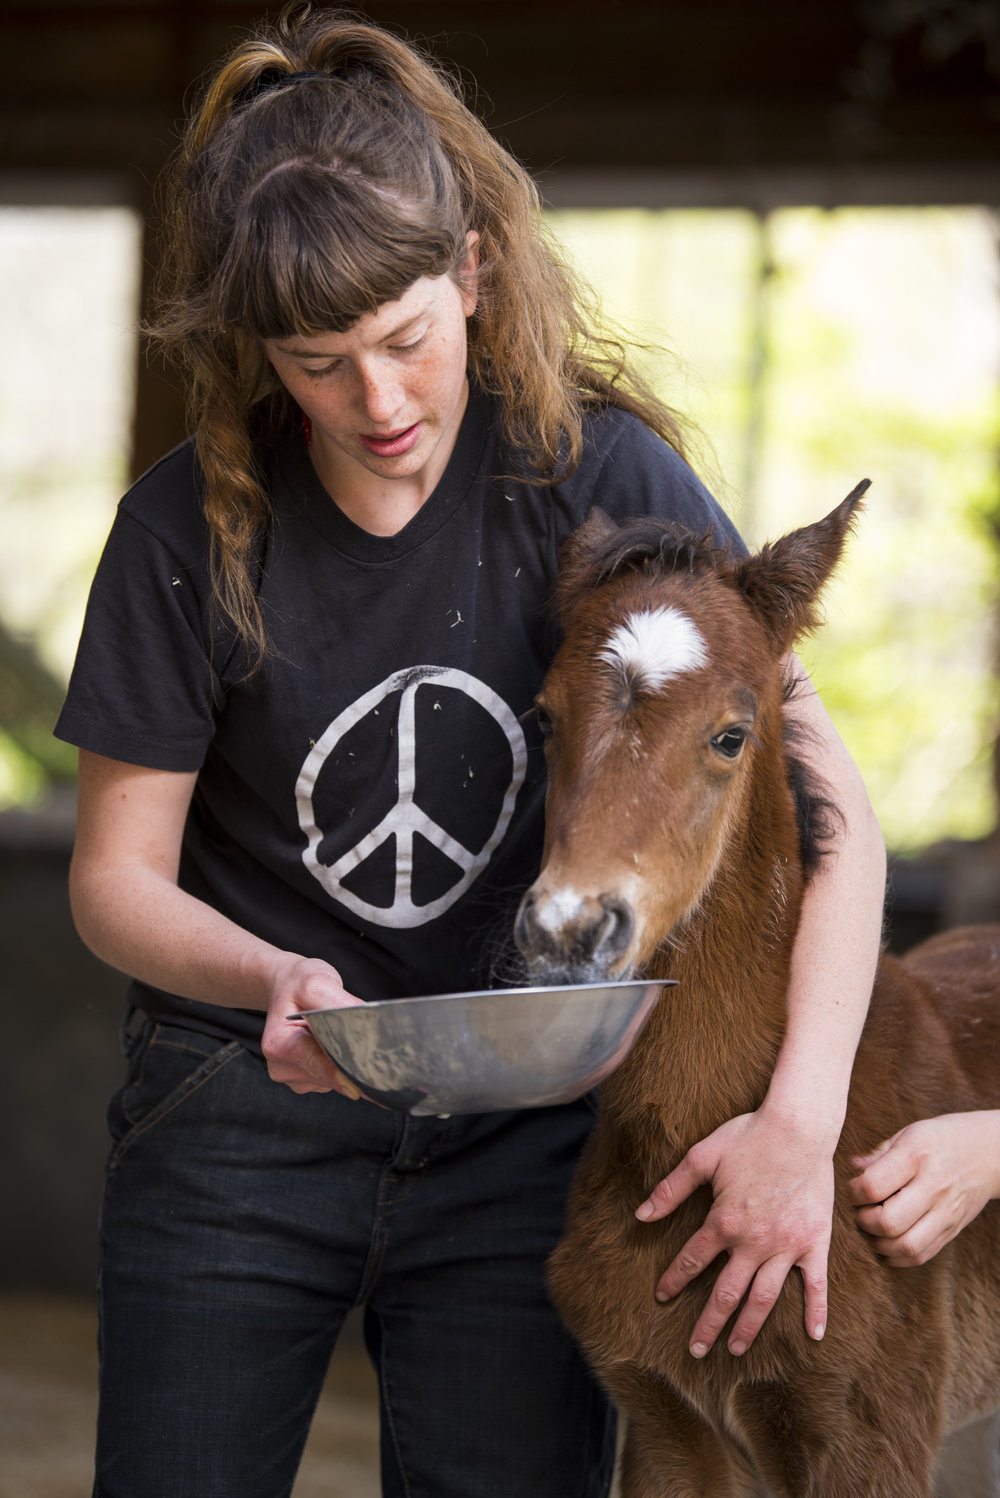 Dandelion Duff feeds Virtue, an orphaned baby female foal, at the Last Chance Corral in Athens, Ohio.  Virtue was separated from her mother and suffered from a form of depression, resulting in appetite problems and needing to be hand fed.